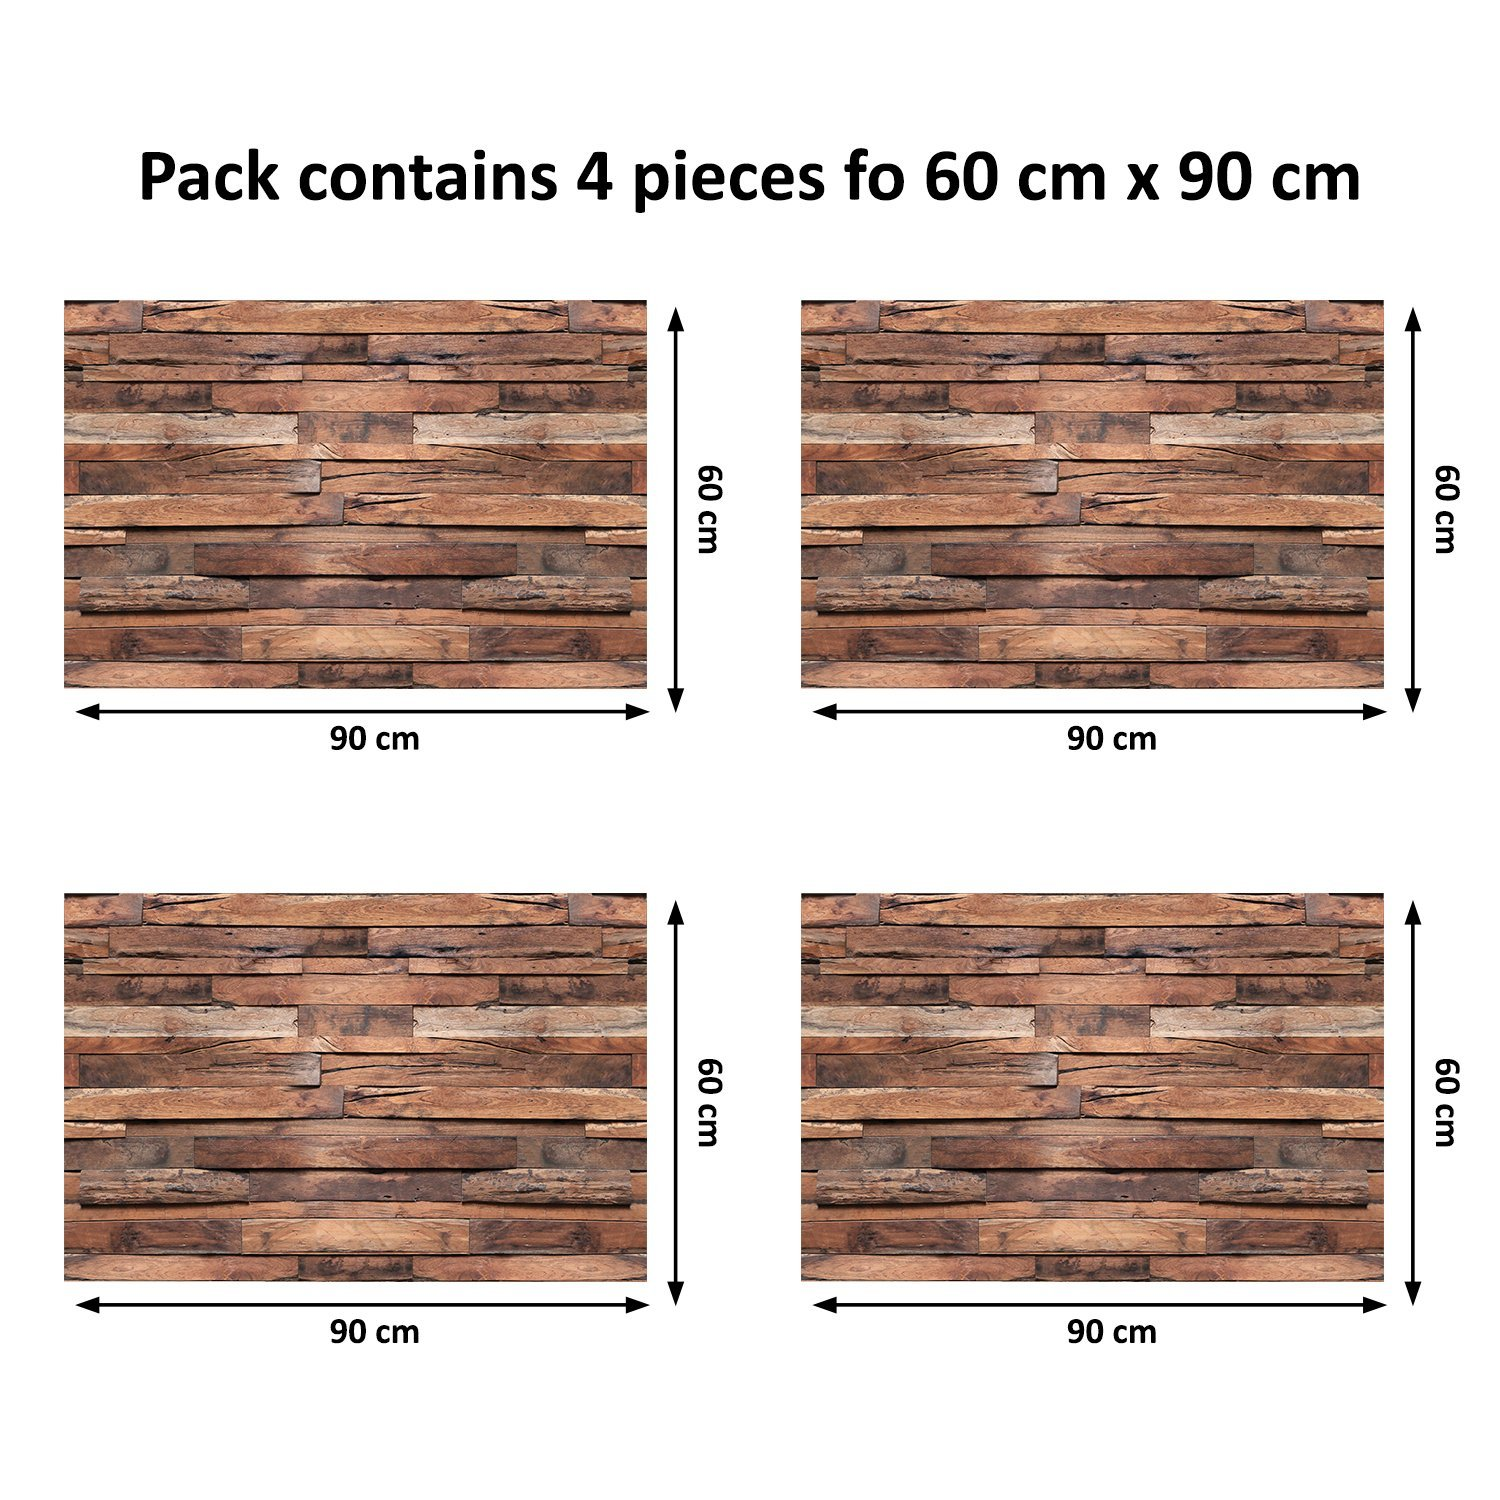 Wall Stickers ''Flexiplus Timber Strips 4 packs'' Removable Self-Adhesive Wall Mural Art Home Living Room Kitchen Décor Restaurant Cafe Hotel Decoration